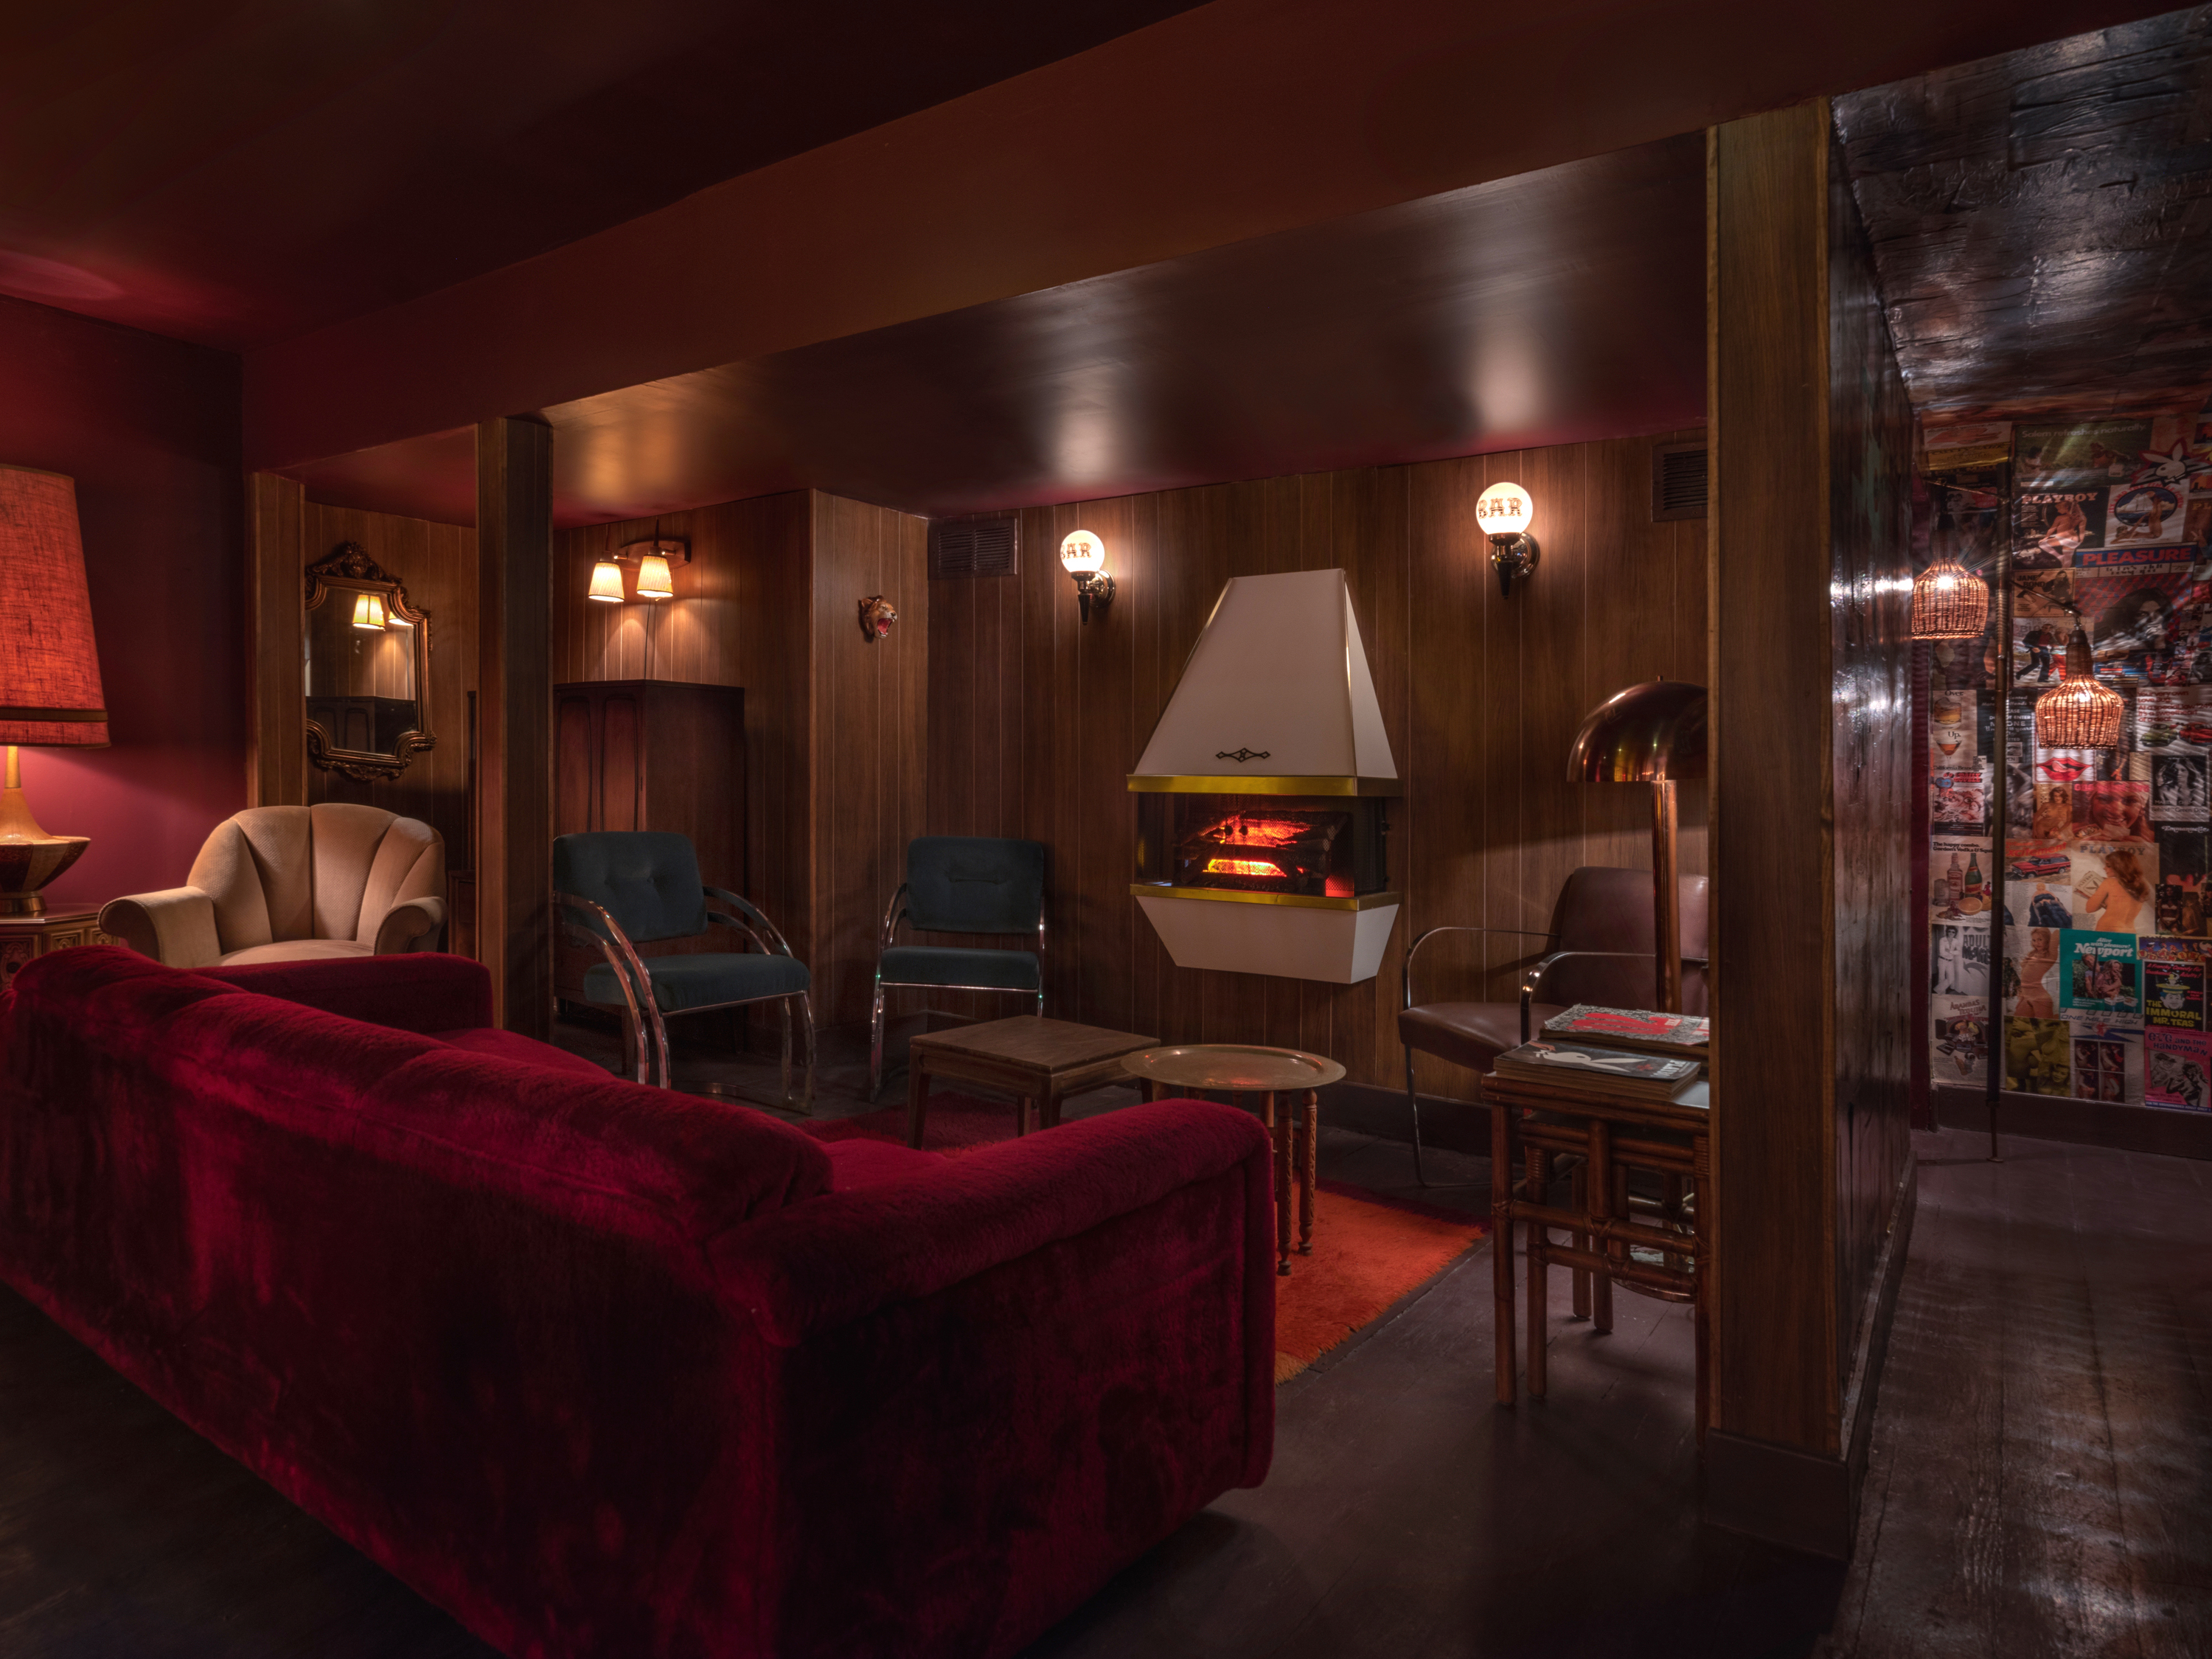 18 Fireplace Bars Nyc Has Where You Can Drink In A Cozy Setting